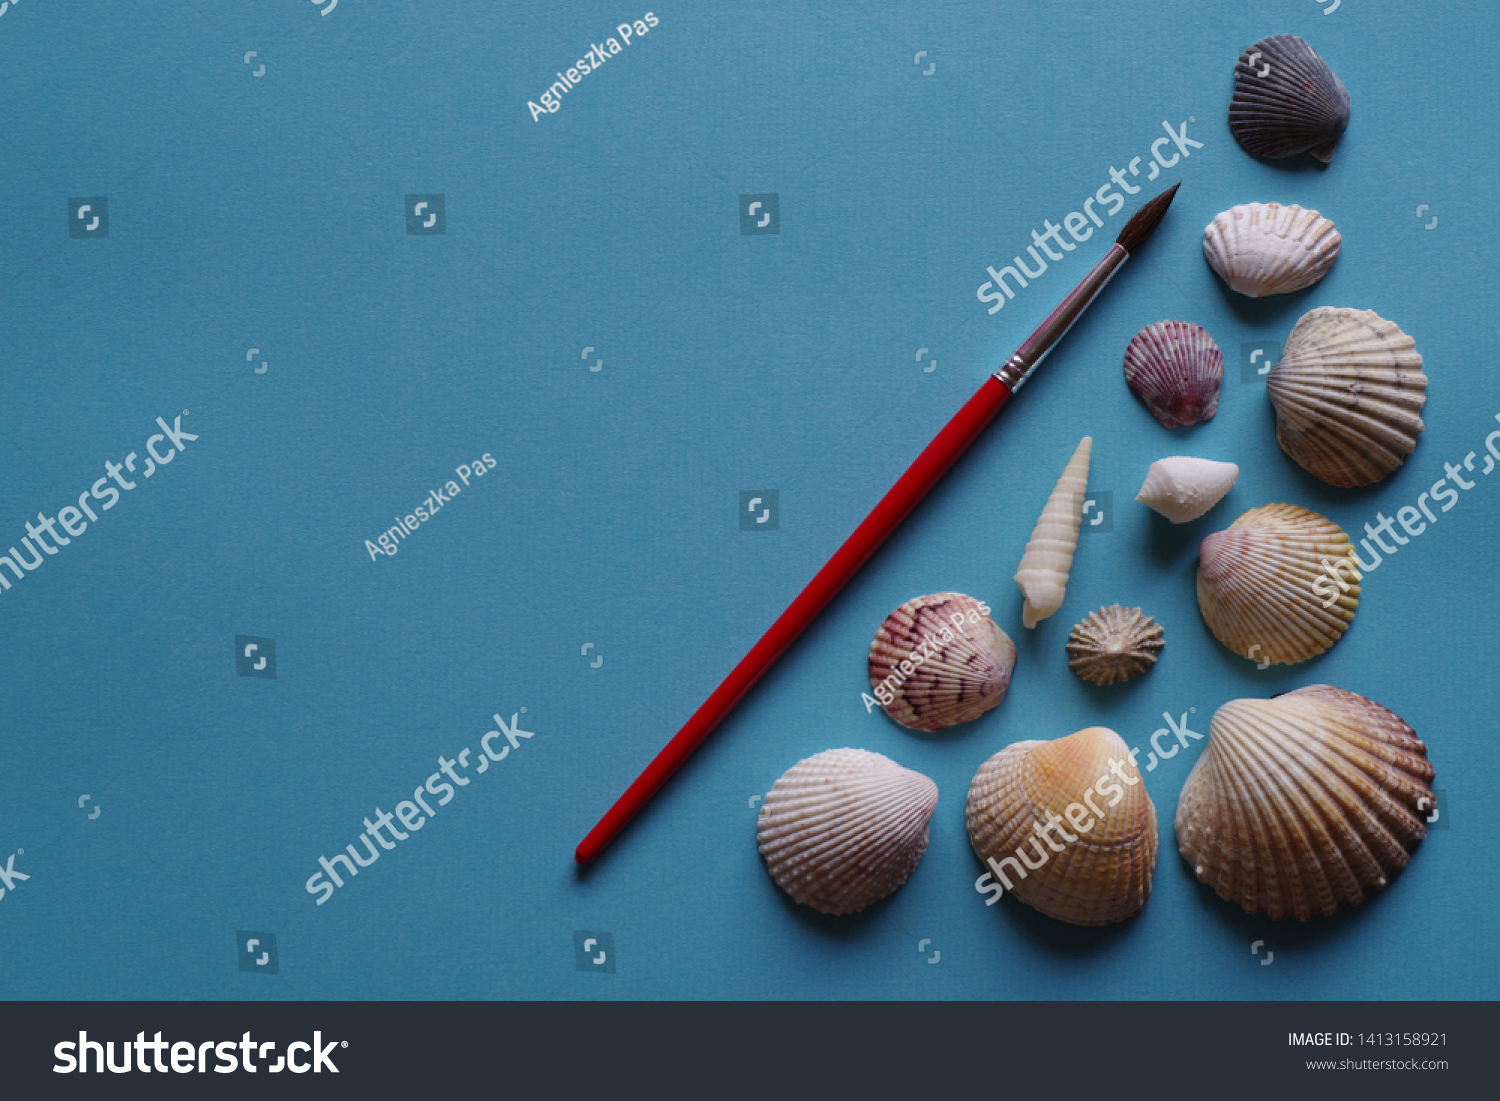 stock-photo-paintbrush-and-seashells-on-